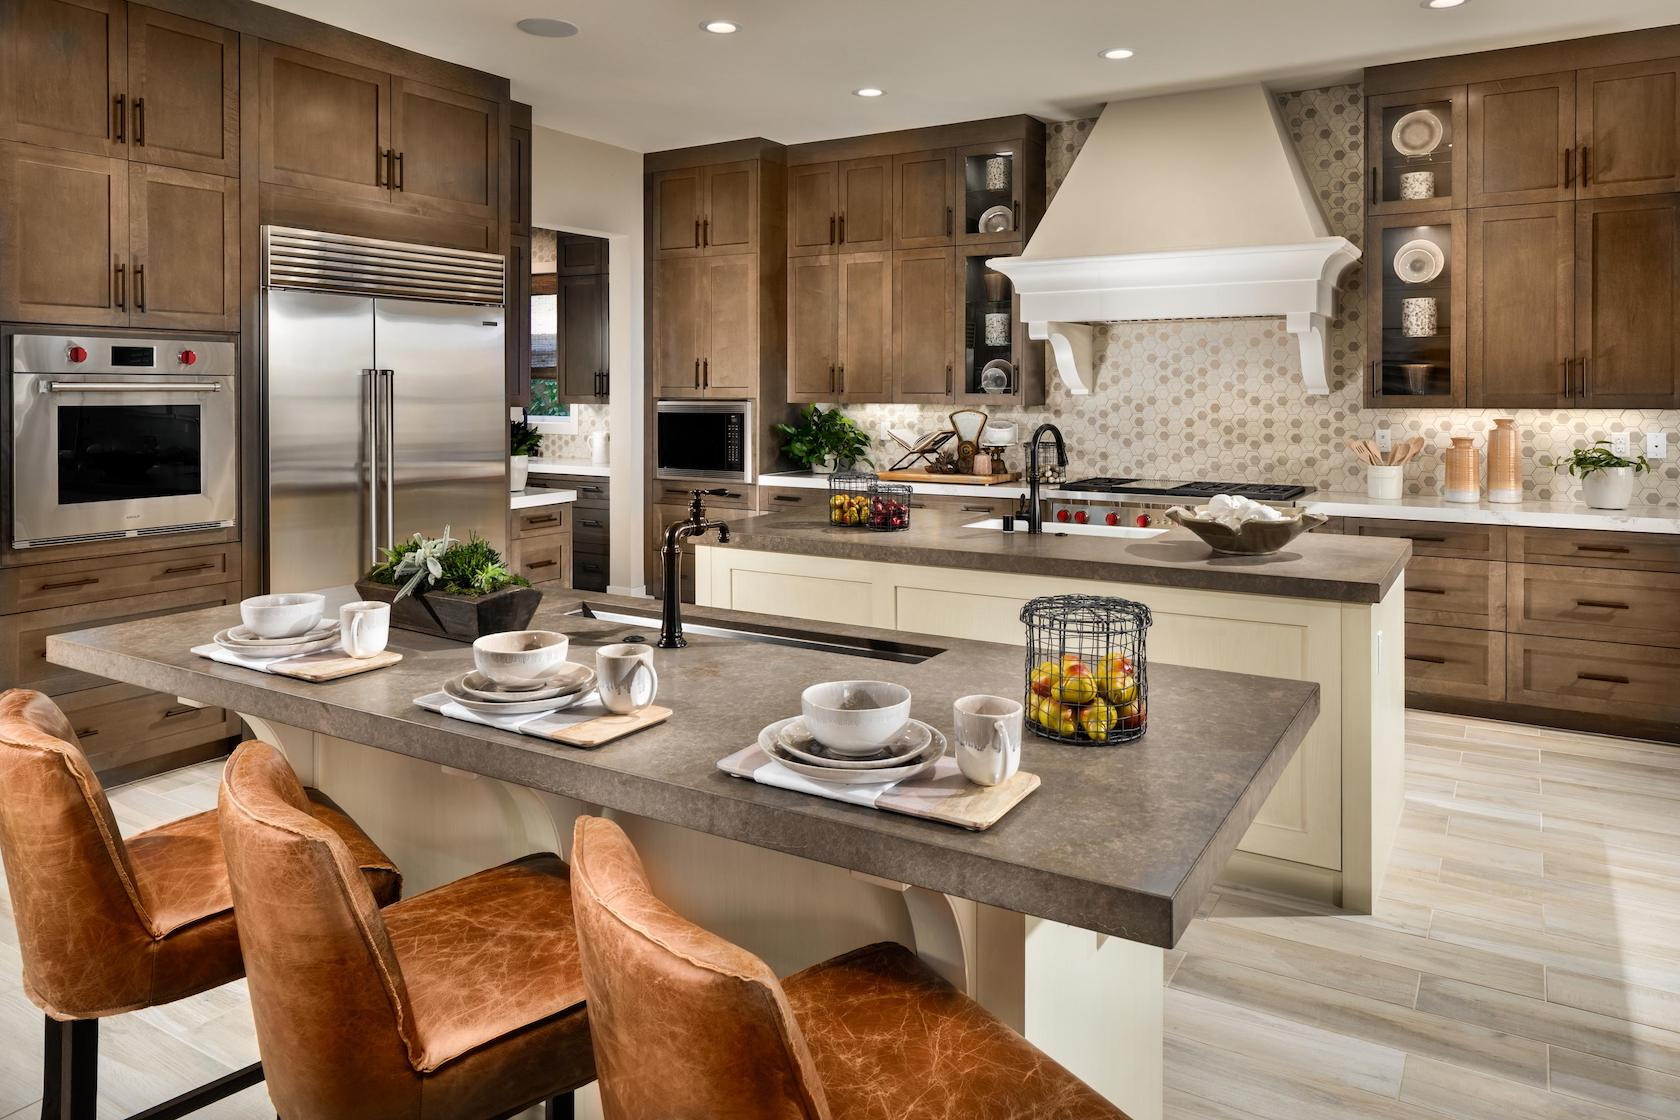 Kitchen Design Ideas For 2020 - The Kitchen Continues To ... on Kitchen Ideas  id=85854